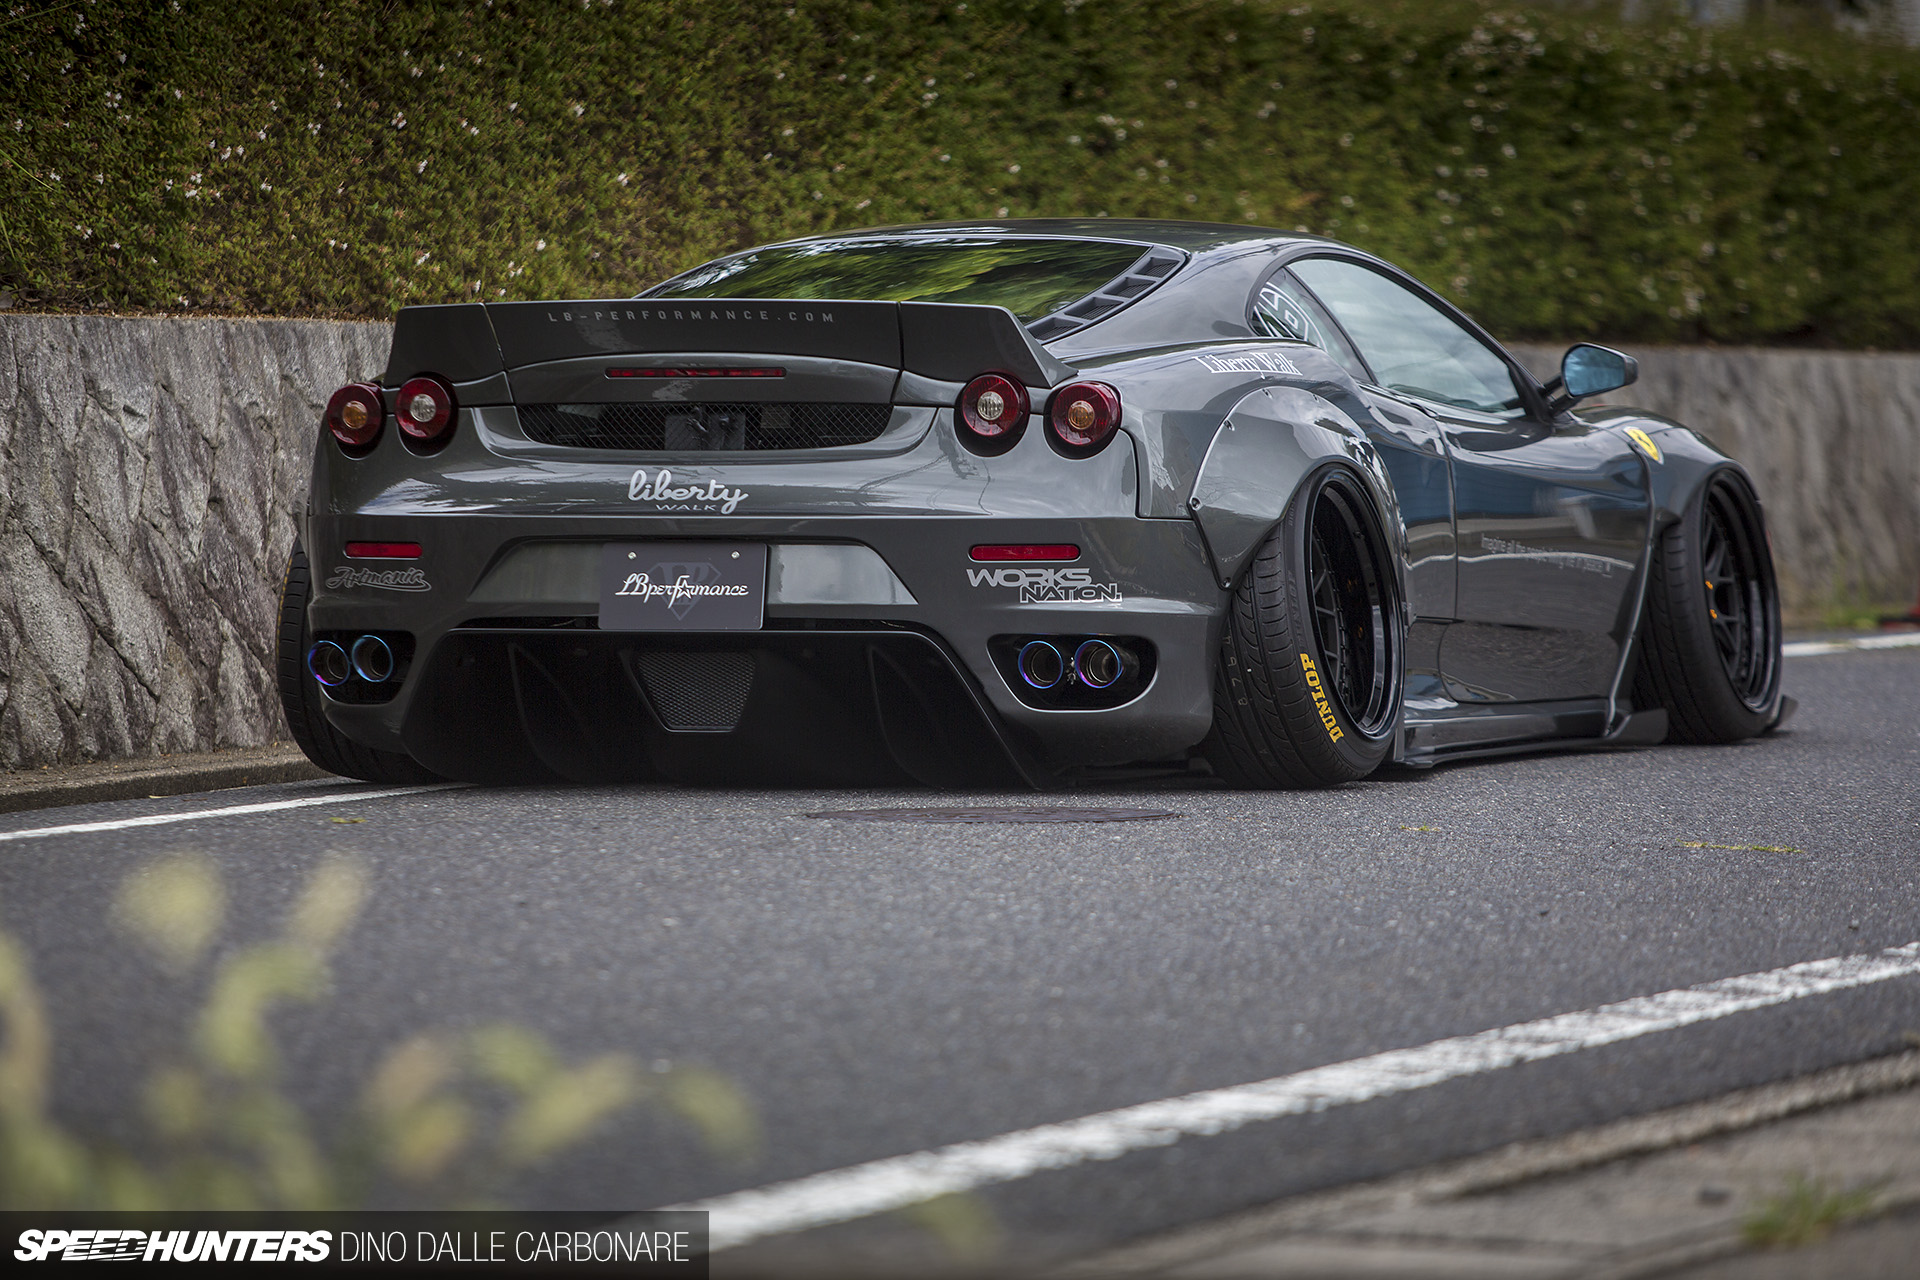 lbw_430_dino_dalle_carbonare_27 LB-WORKS F430